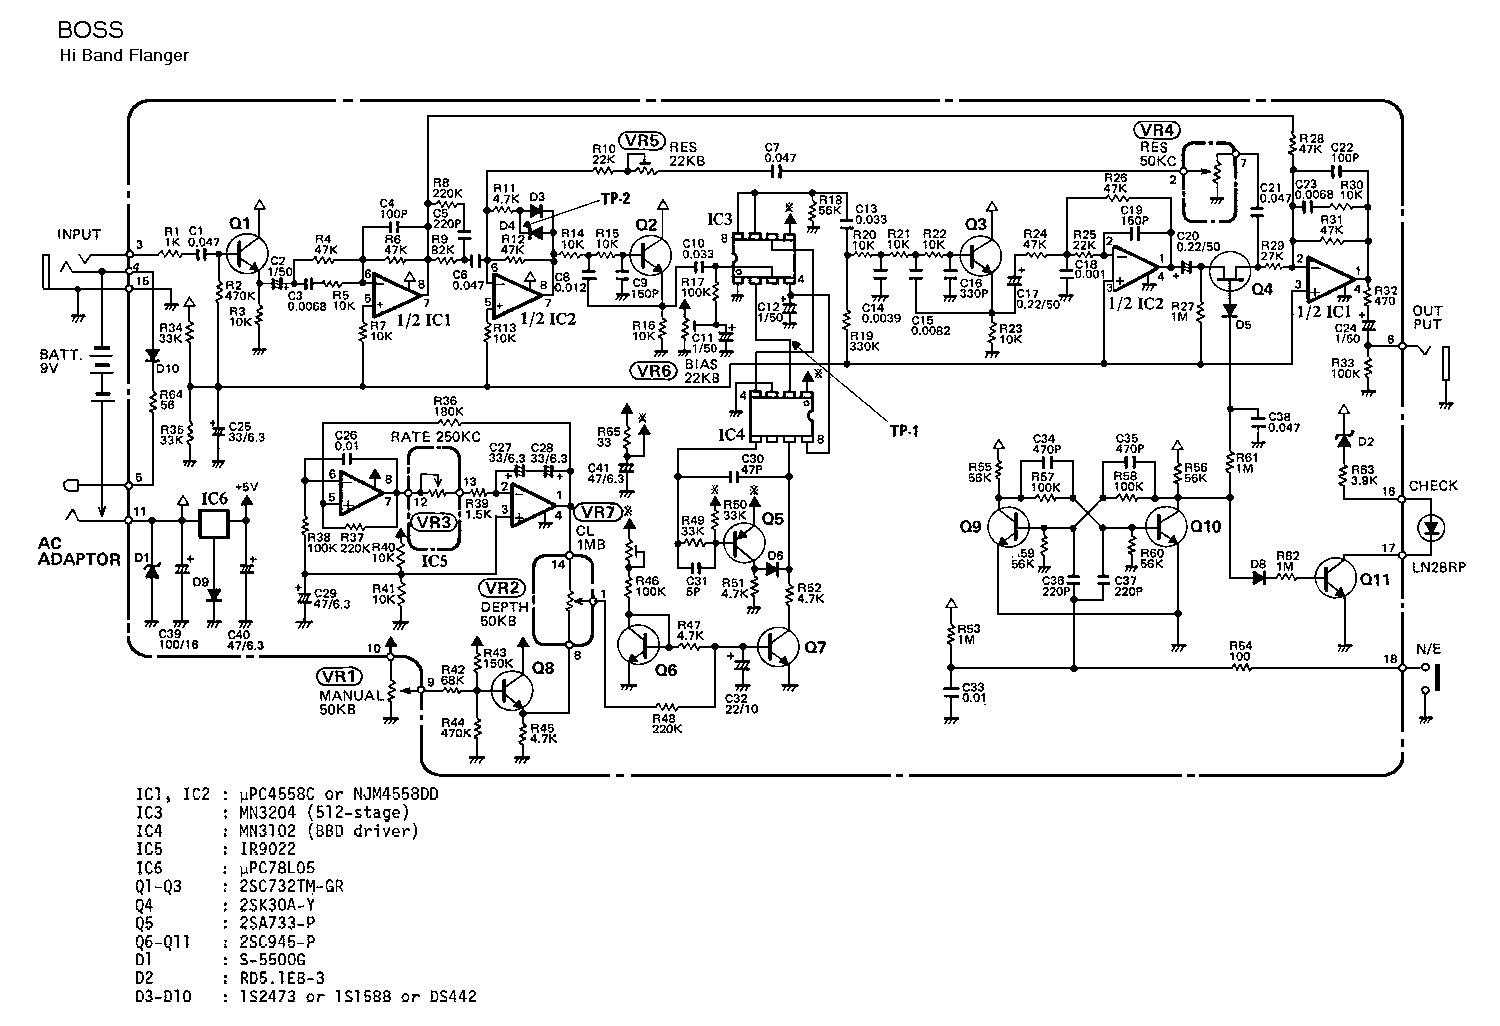 Roland – Diagramasde.com – Diagramas electronicos y ... on true bypass schematic, egnater rebel 20 schematic, crate 50 tube amp schematic, vox ac4 schematic, fender power chorus schematic, peavey special 130 schematic, looper pedal schematic, 59 bassman schematic, gibson ga-40 schematic, fender tweed champ schematic, marshall super lead schematic, soldano x88r schematic, tube overdrive pedal schematic, vox ac30 schematic, marshall plexi schematic, marshall jcm 800 schematic, dumble schematic, frontman 25r schematic, marshall 1974x schematic, vox ac30cc schematic,